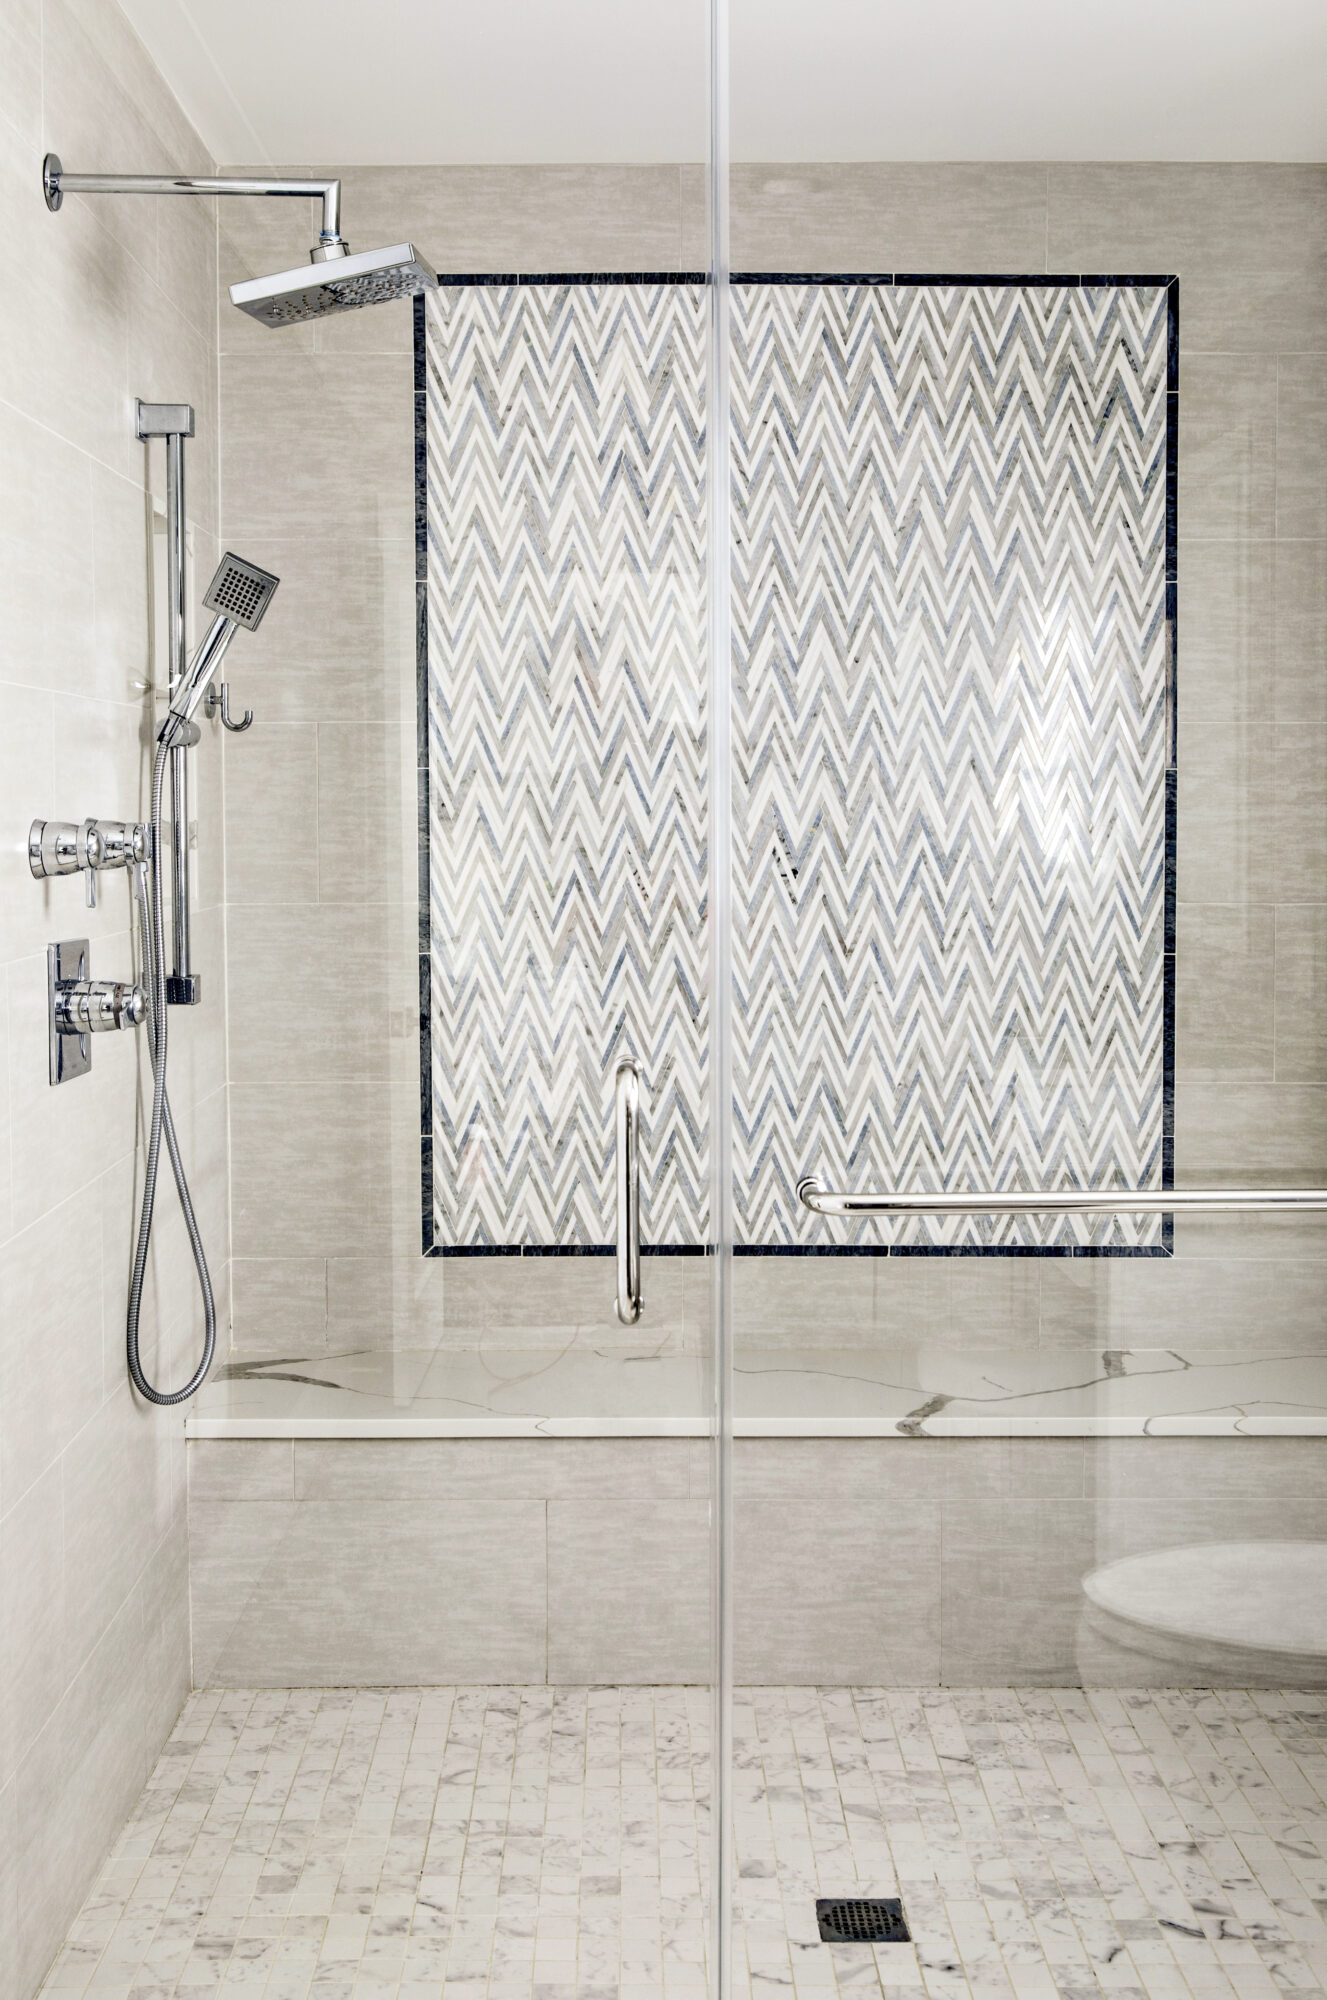 shower feature wall with chevron tile pattern